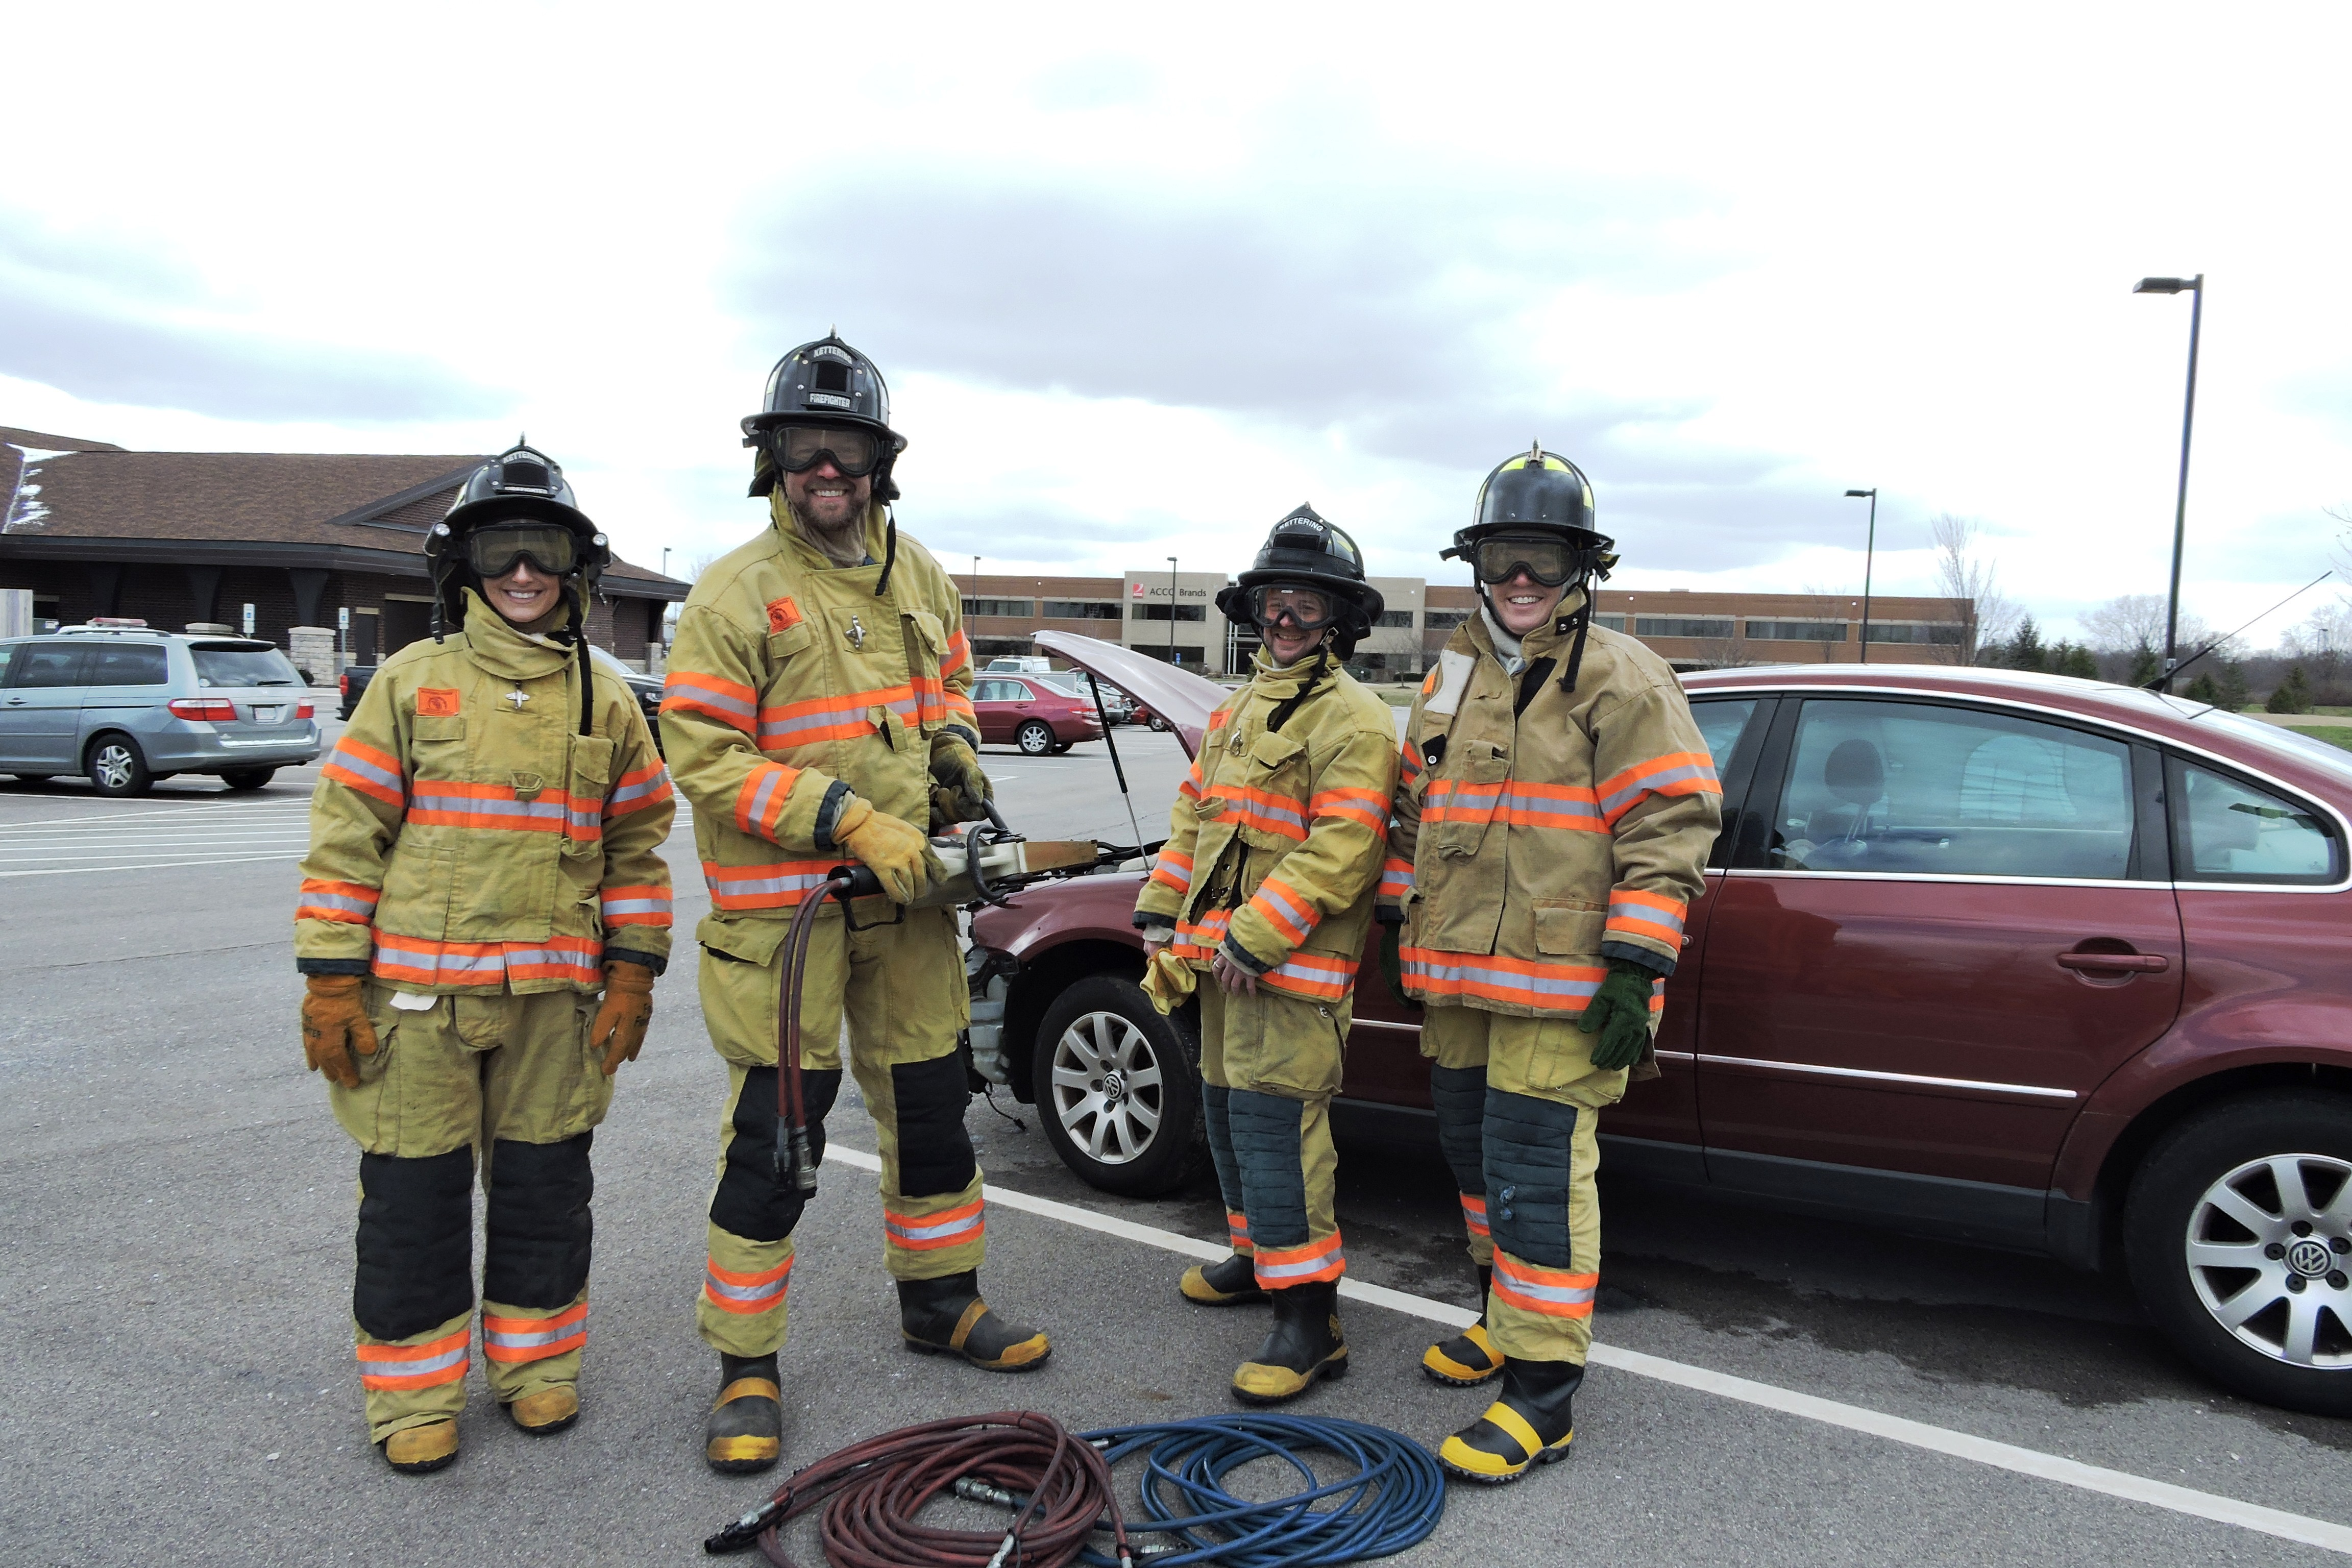 Kettering Leadership Academy during a Fire exercise on Public Safety Day